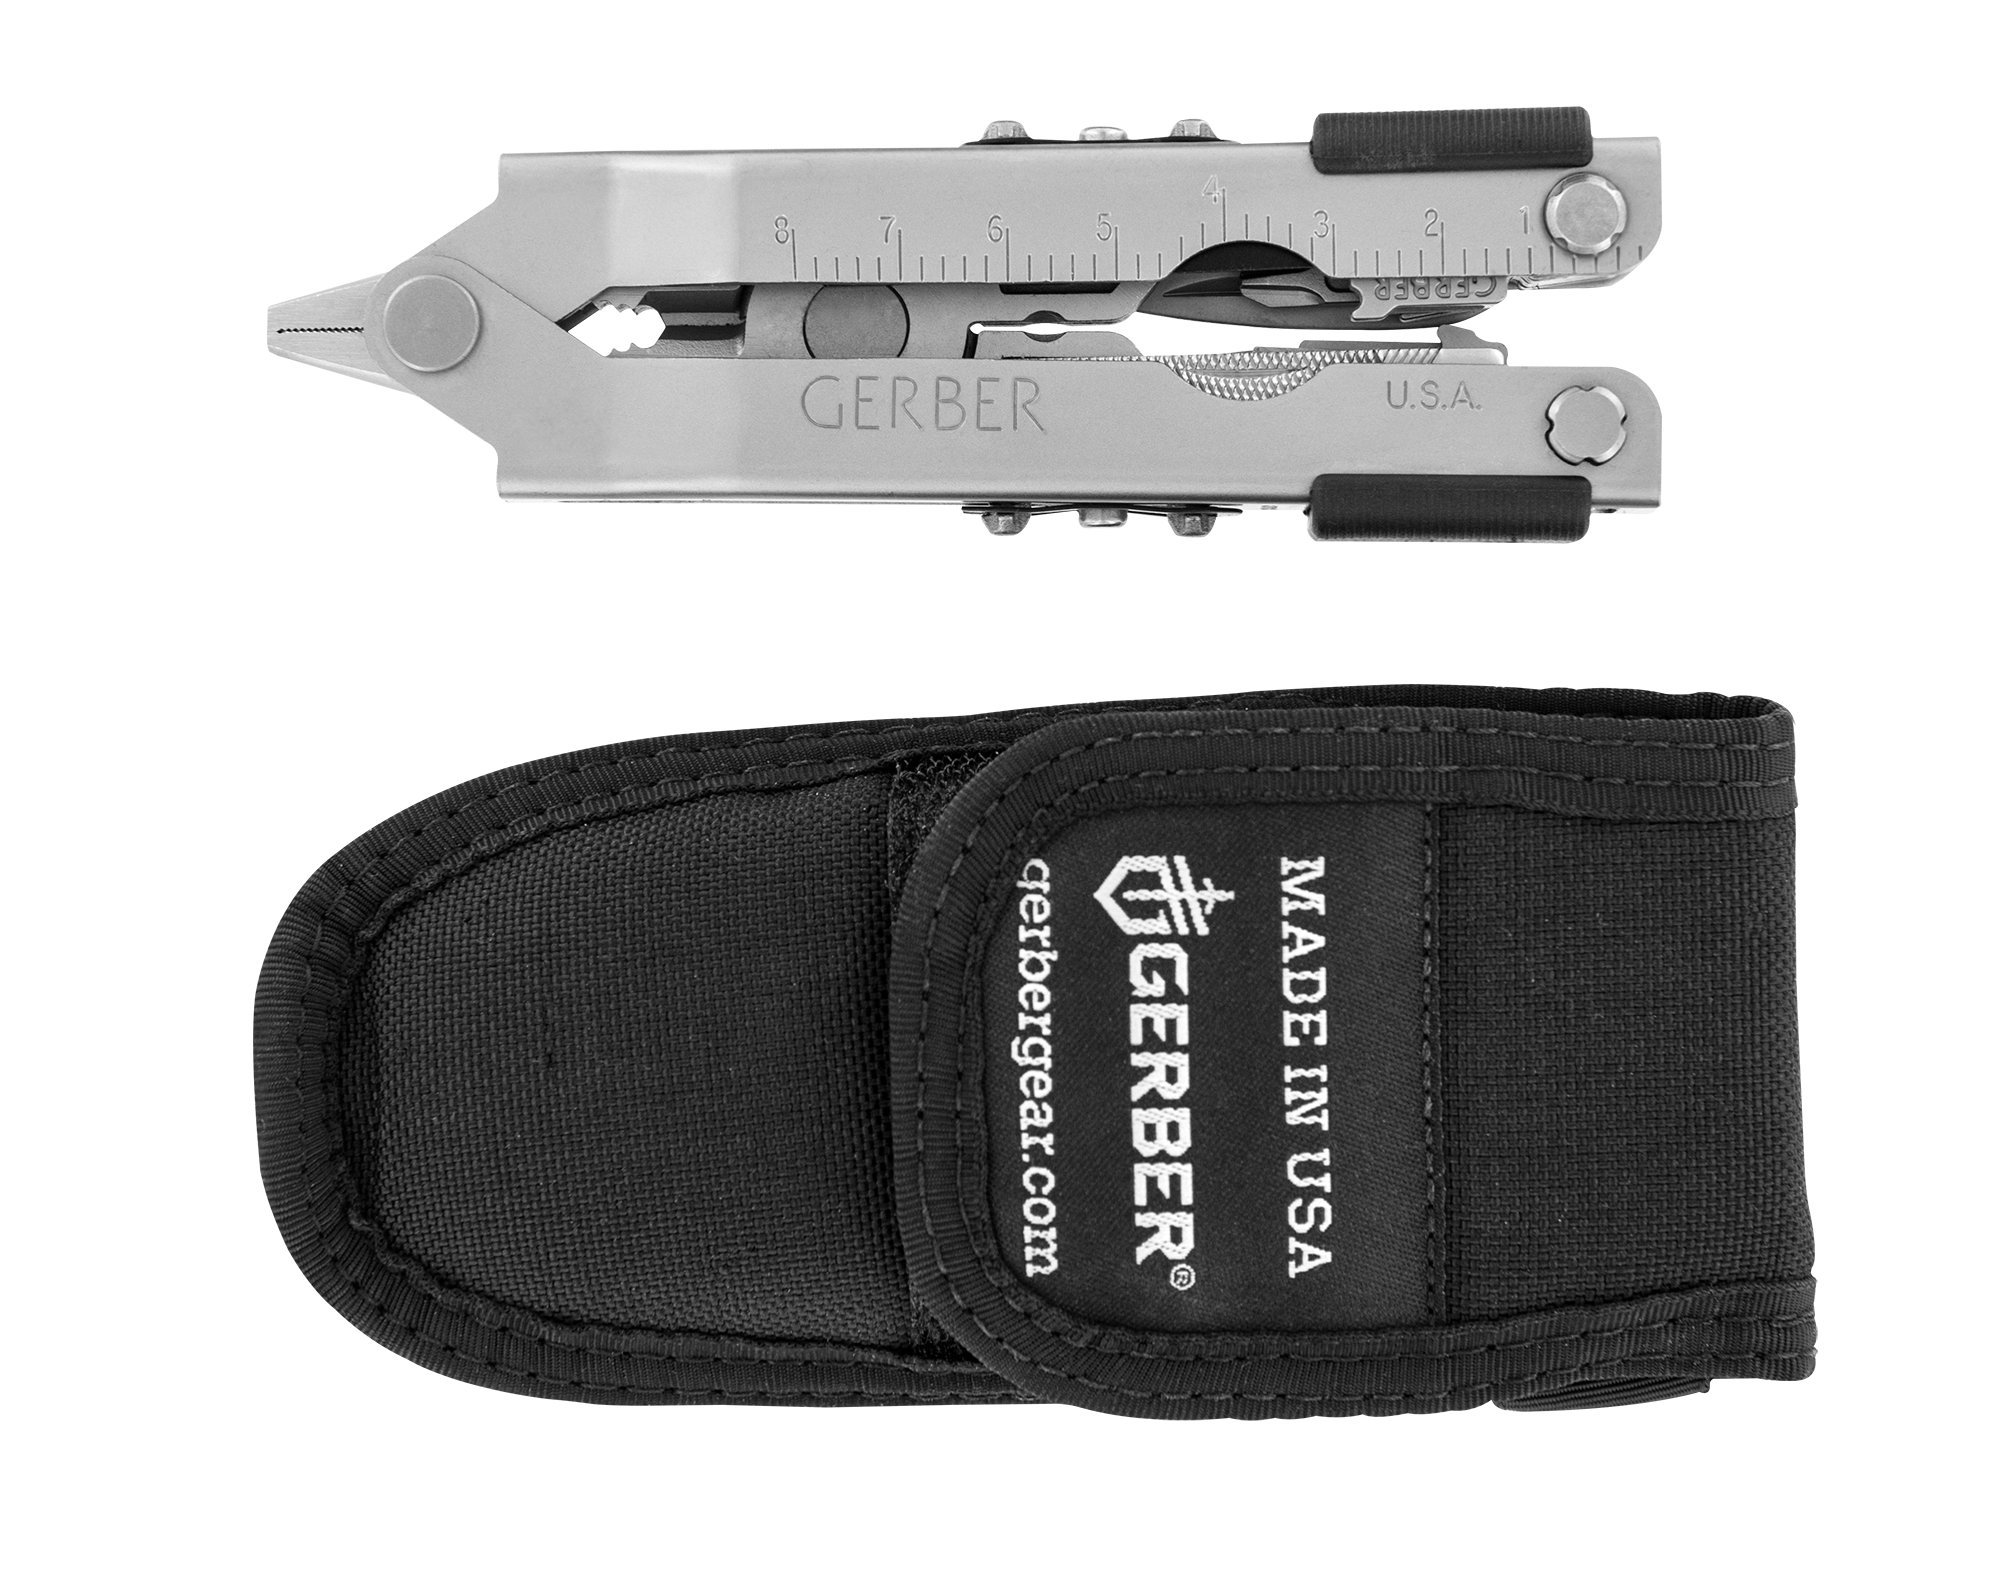 Gerber MP600 Pro Scout Multi-Plier, Needle Nose, Stainless, with Tool Kit [07564]